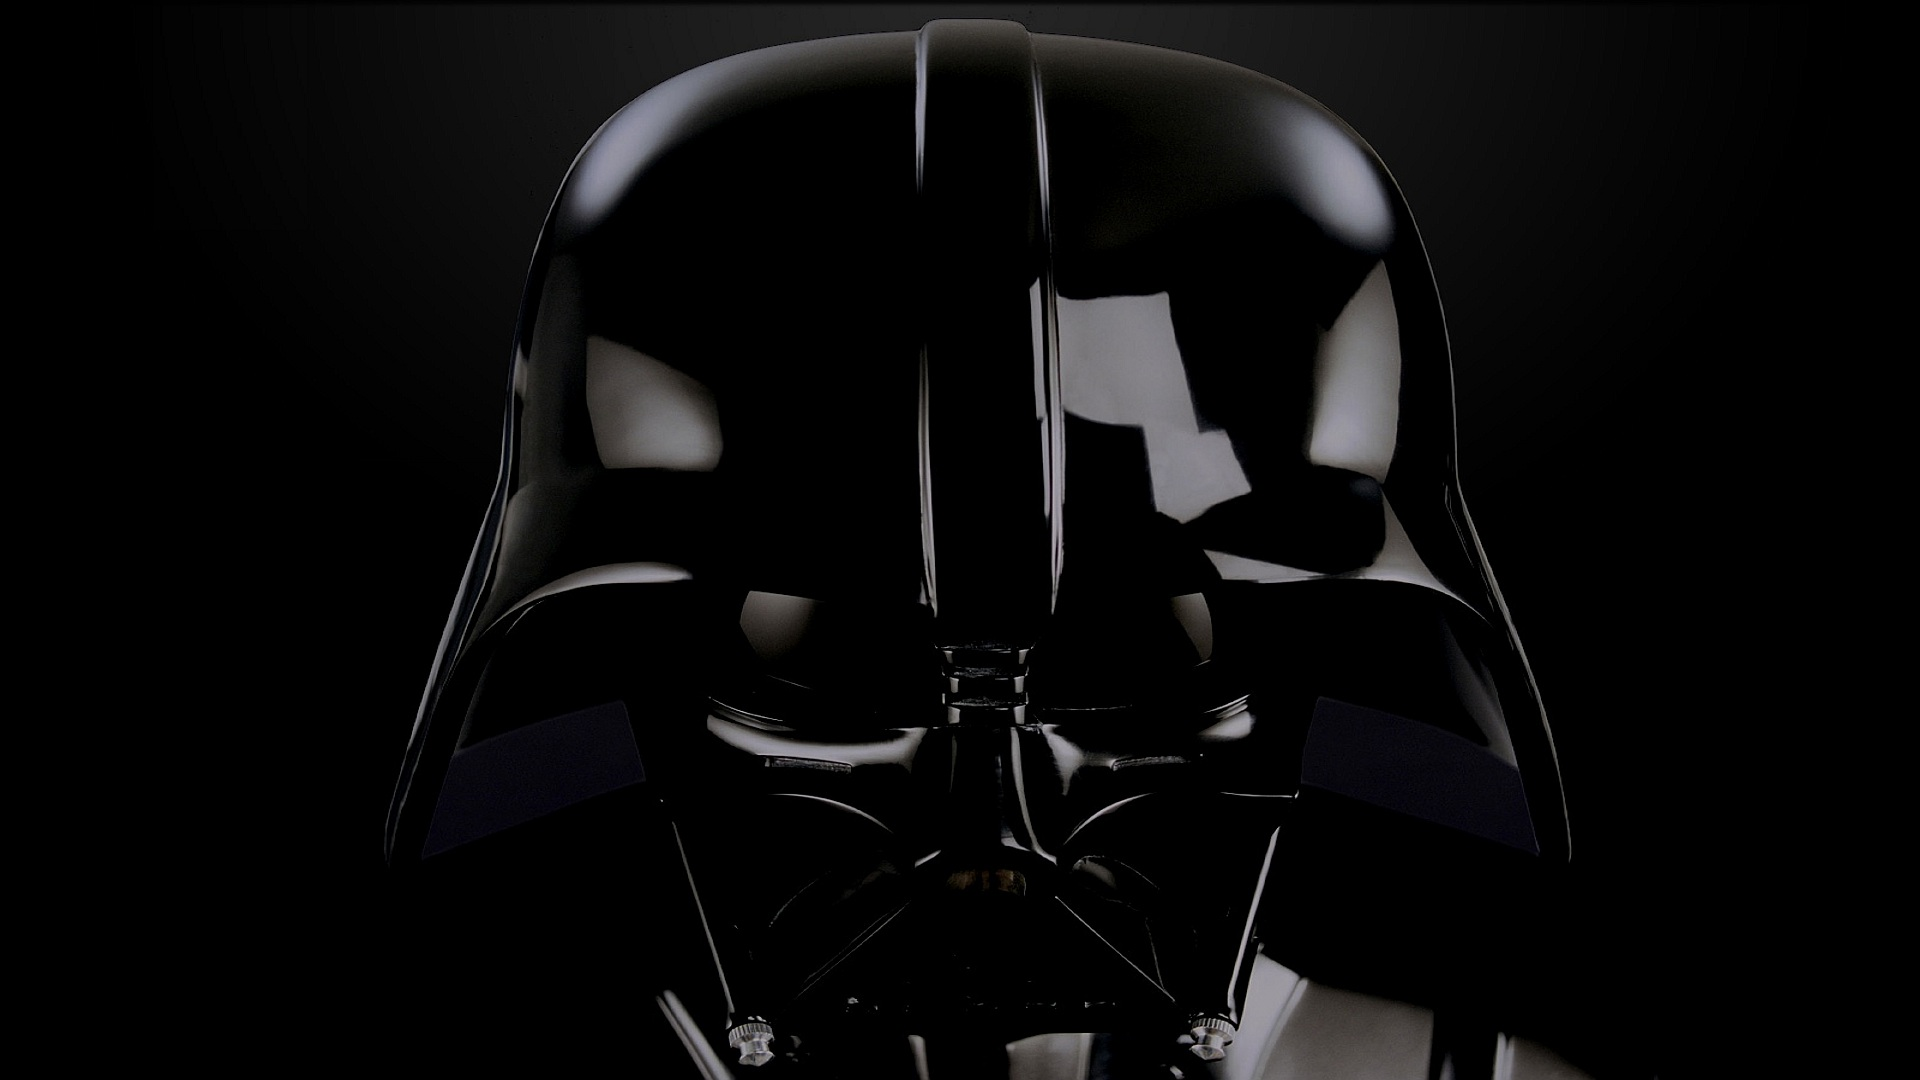 Vader's Intensity Wallpapers